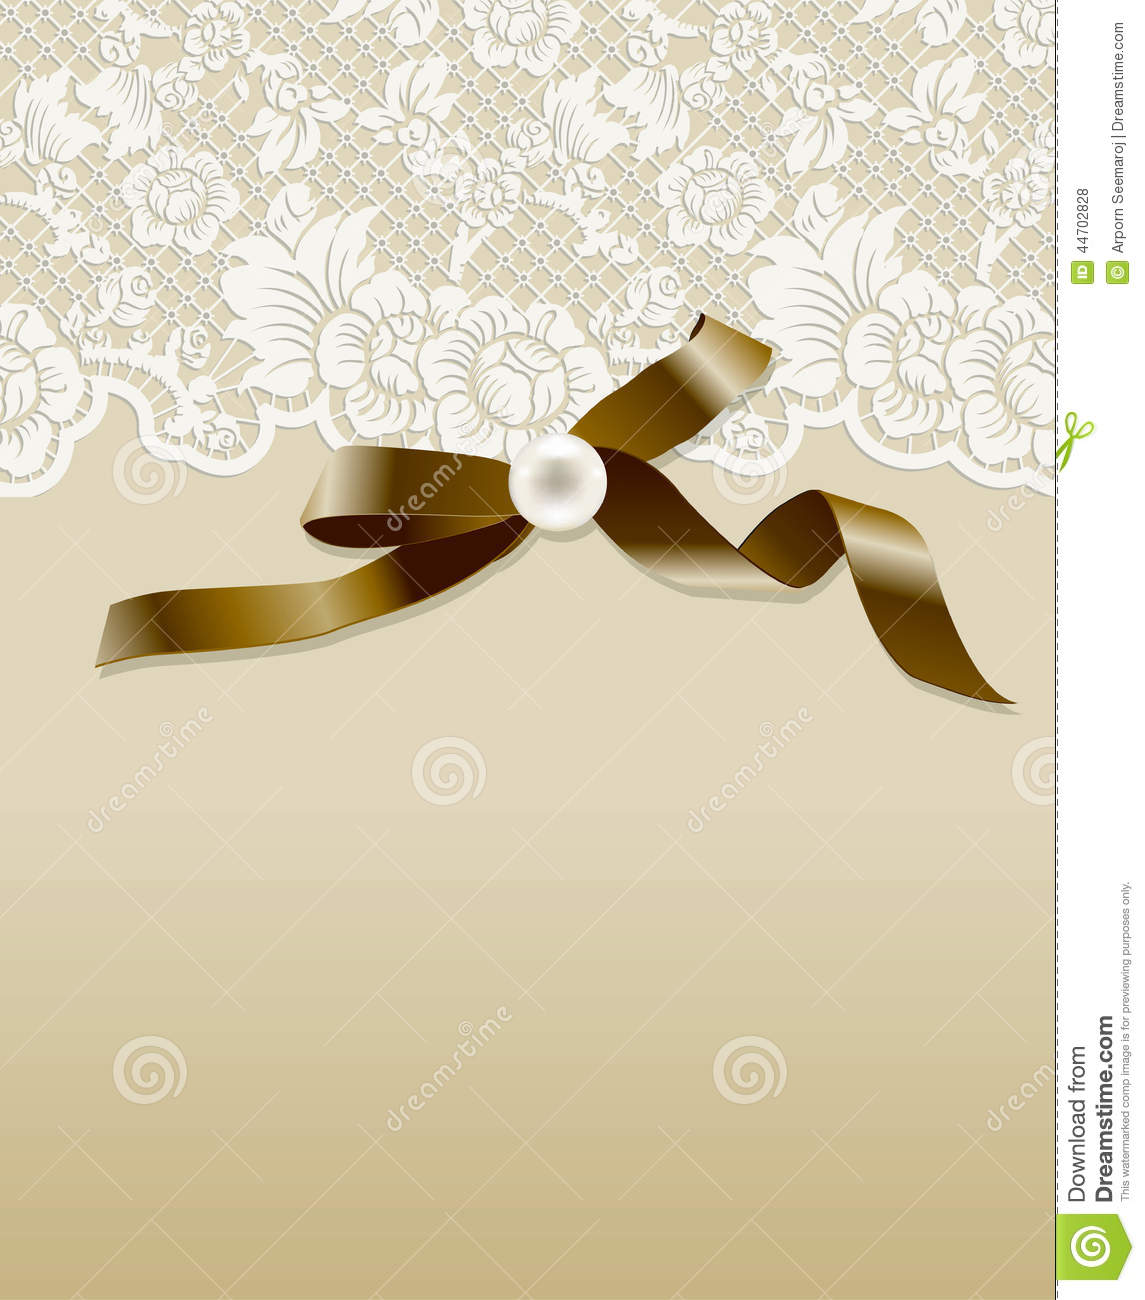 Vector Of Vintage Lace Stock Vector - Image: 44702828